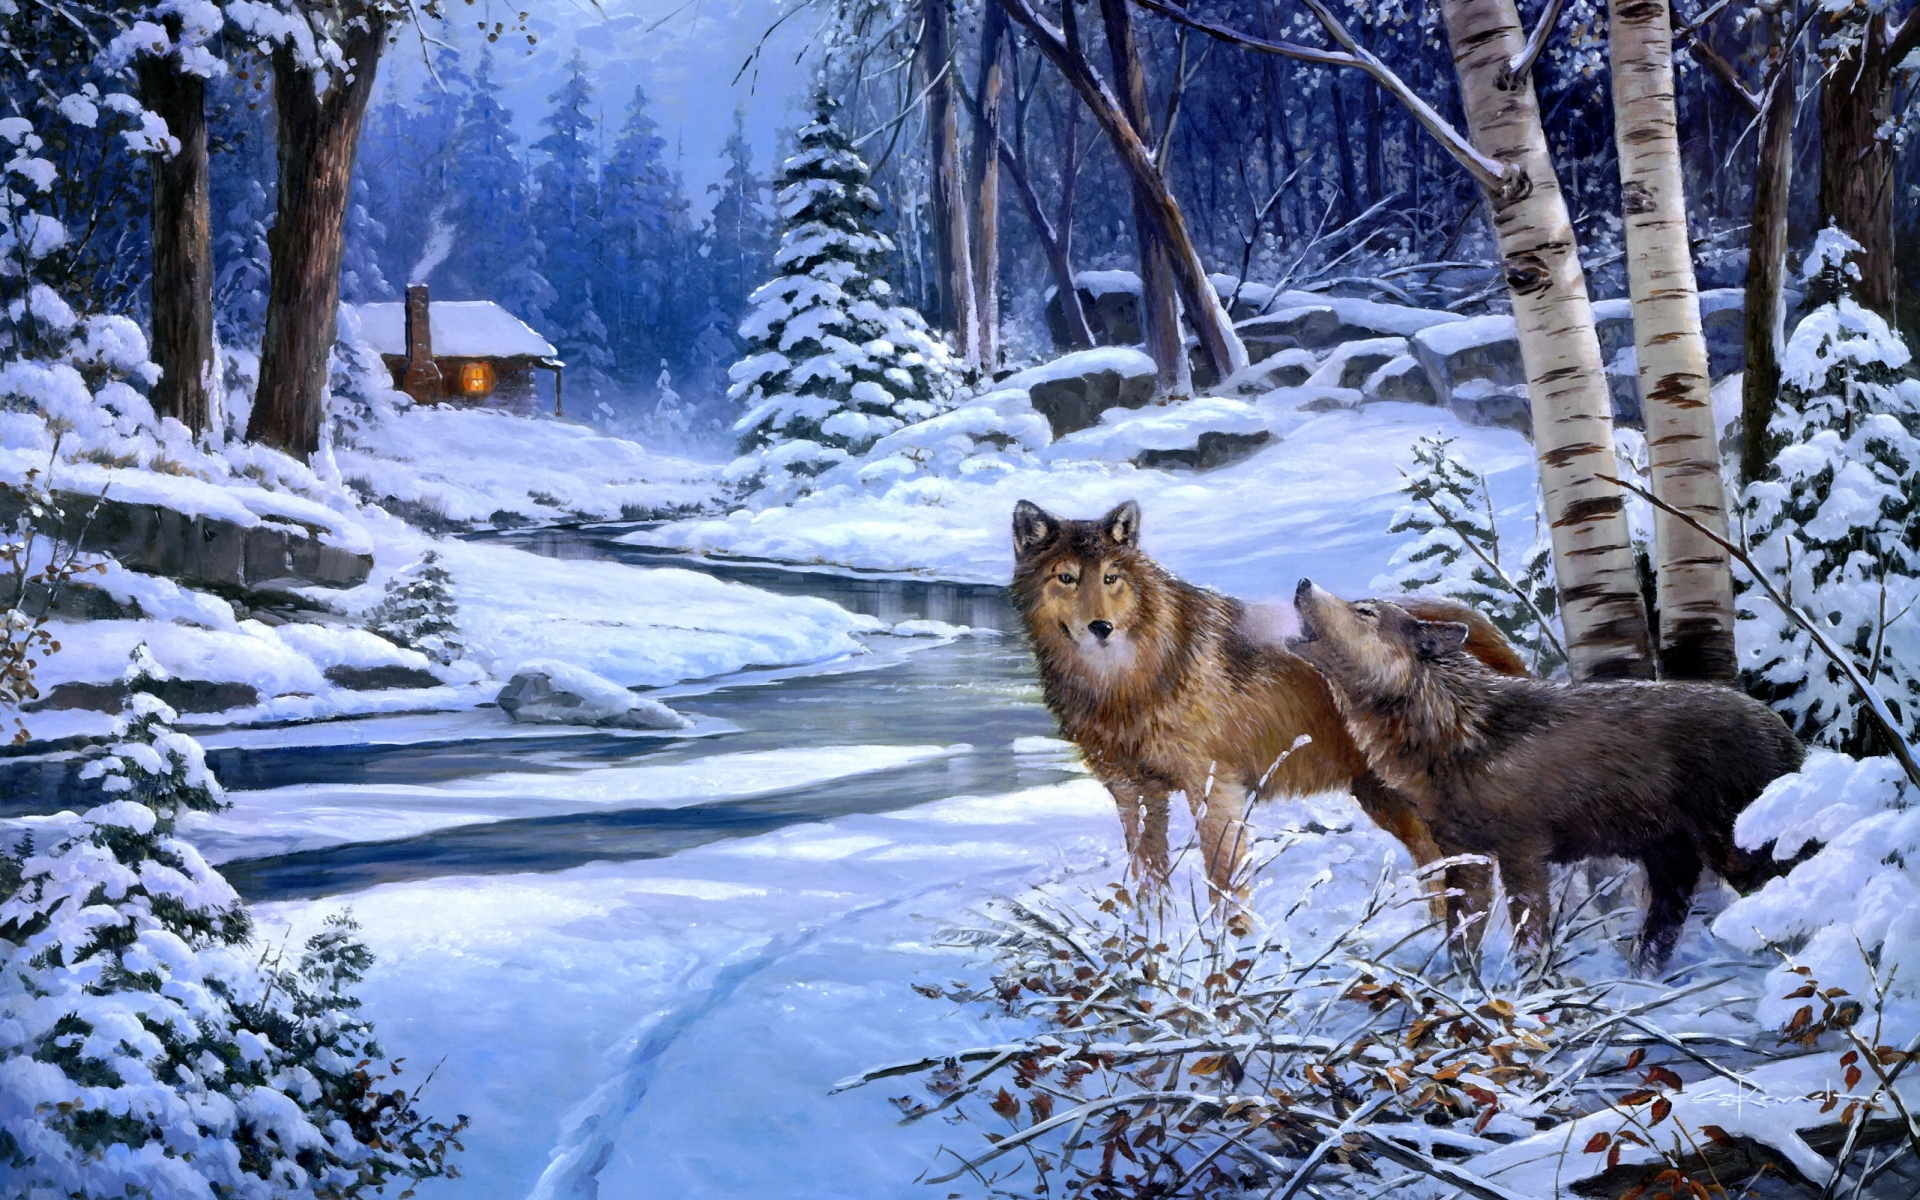 paintings landscapes winter snow rivers cabin winter snow rivers cabin 1920x1200